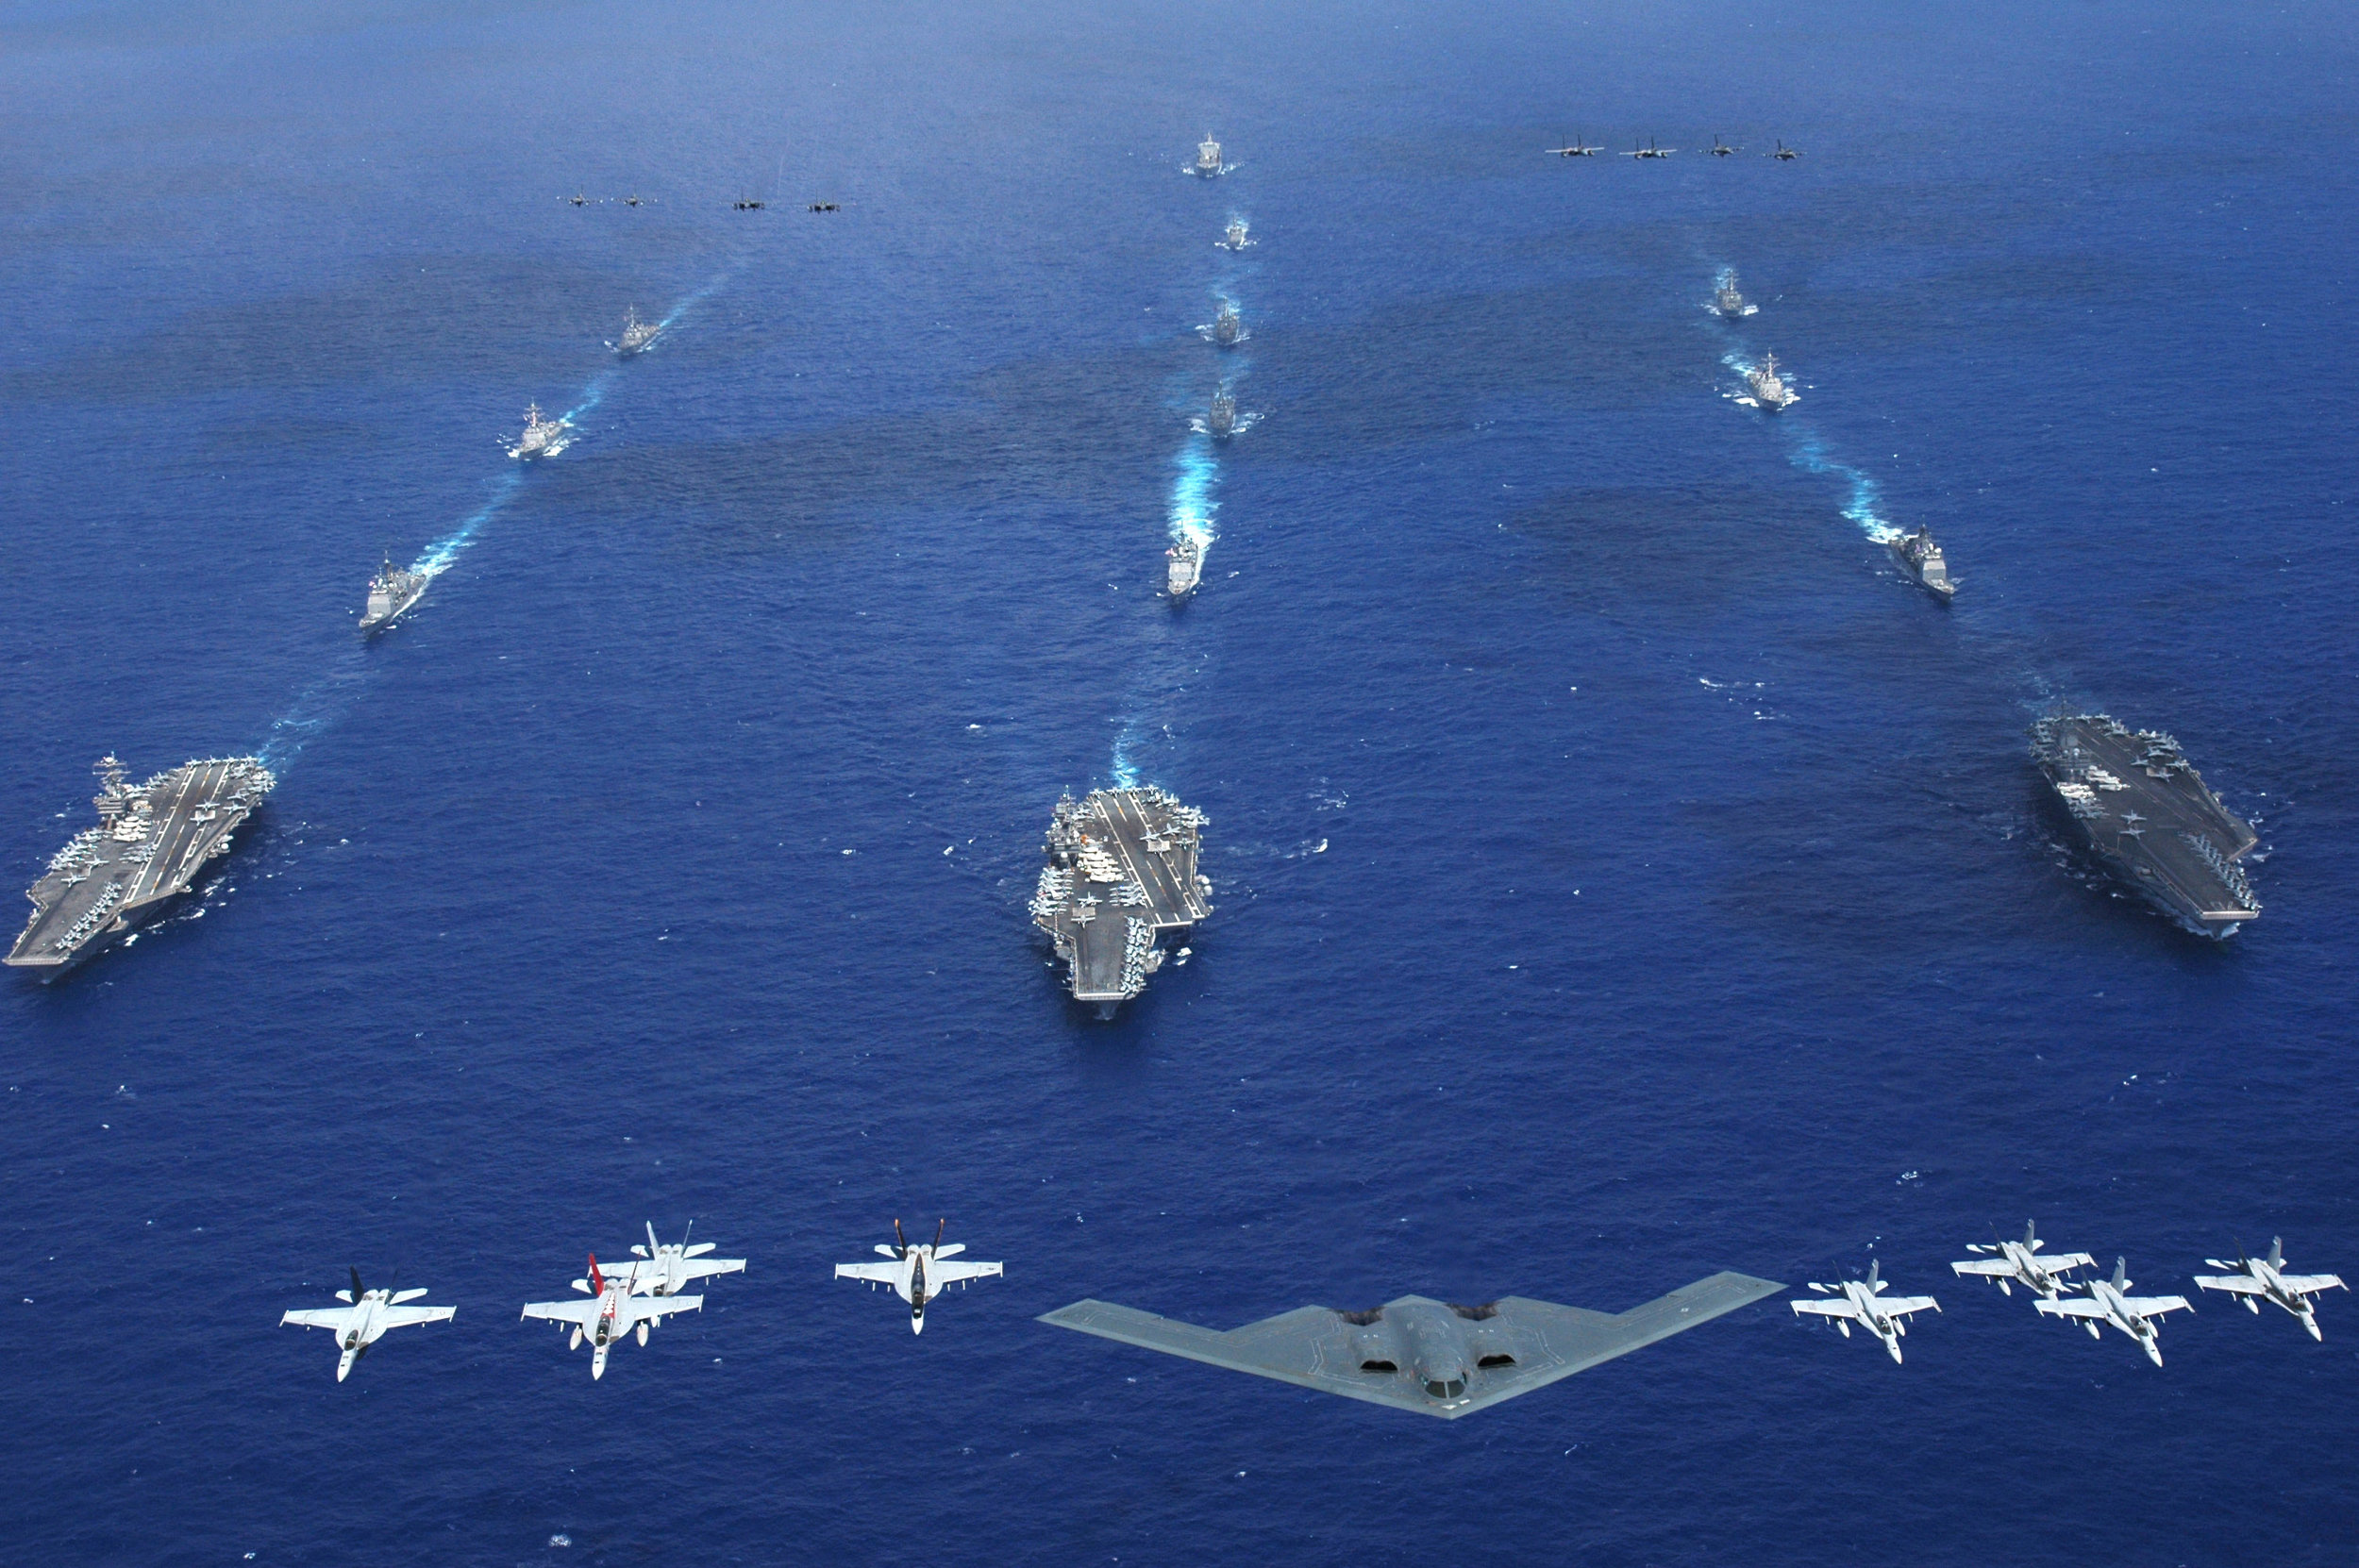 Planes and ships from the U.S. Air Force, Navy, and Marine Corps (U.S. Navy Photo)